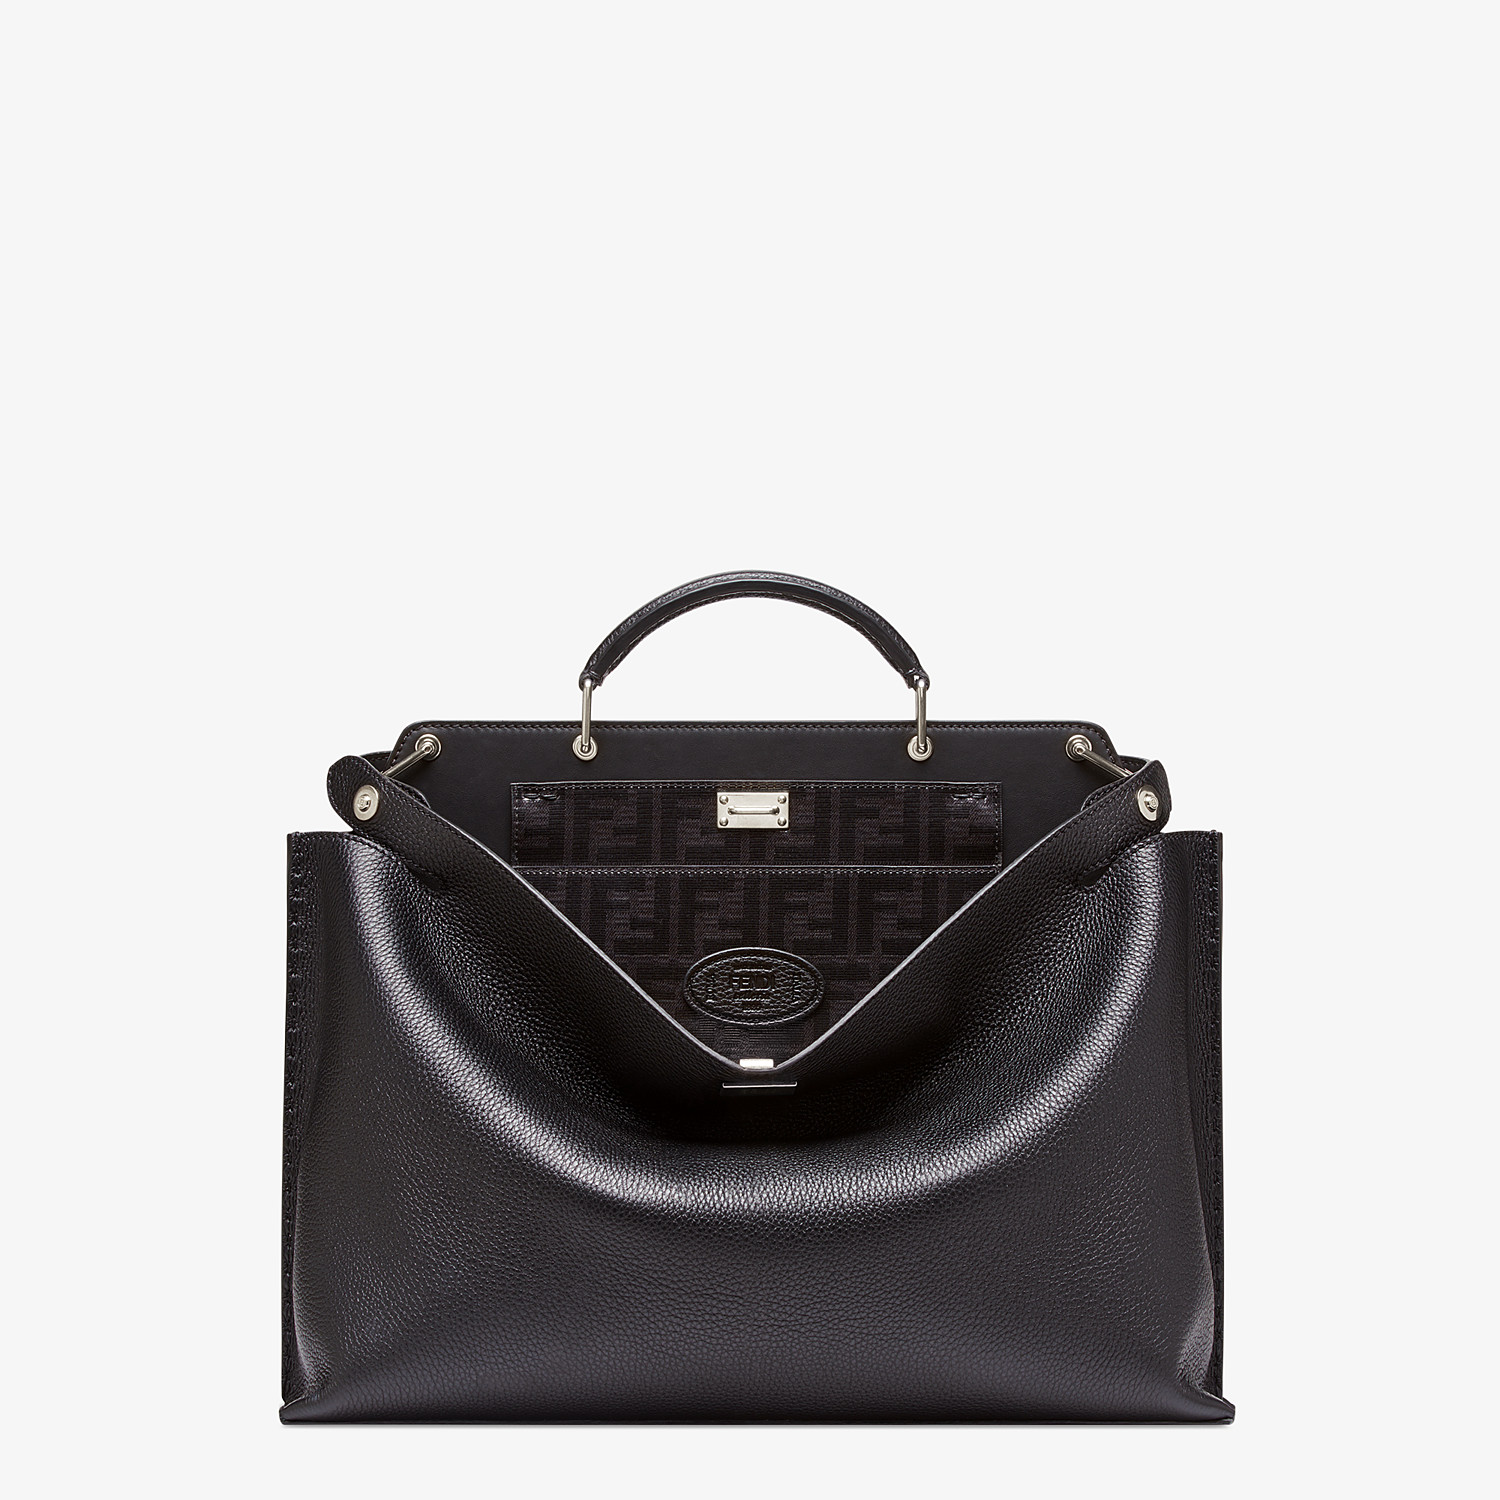 FENDI PEEKABOO ESSENTIAL - Black leather bag - view 1 detail